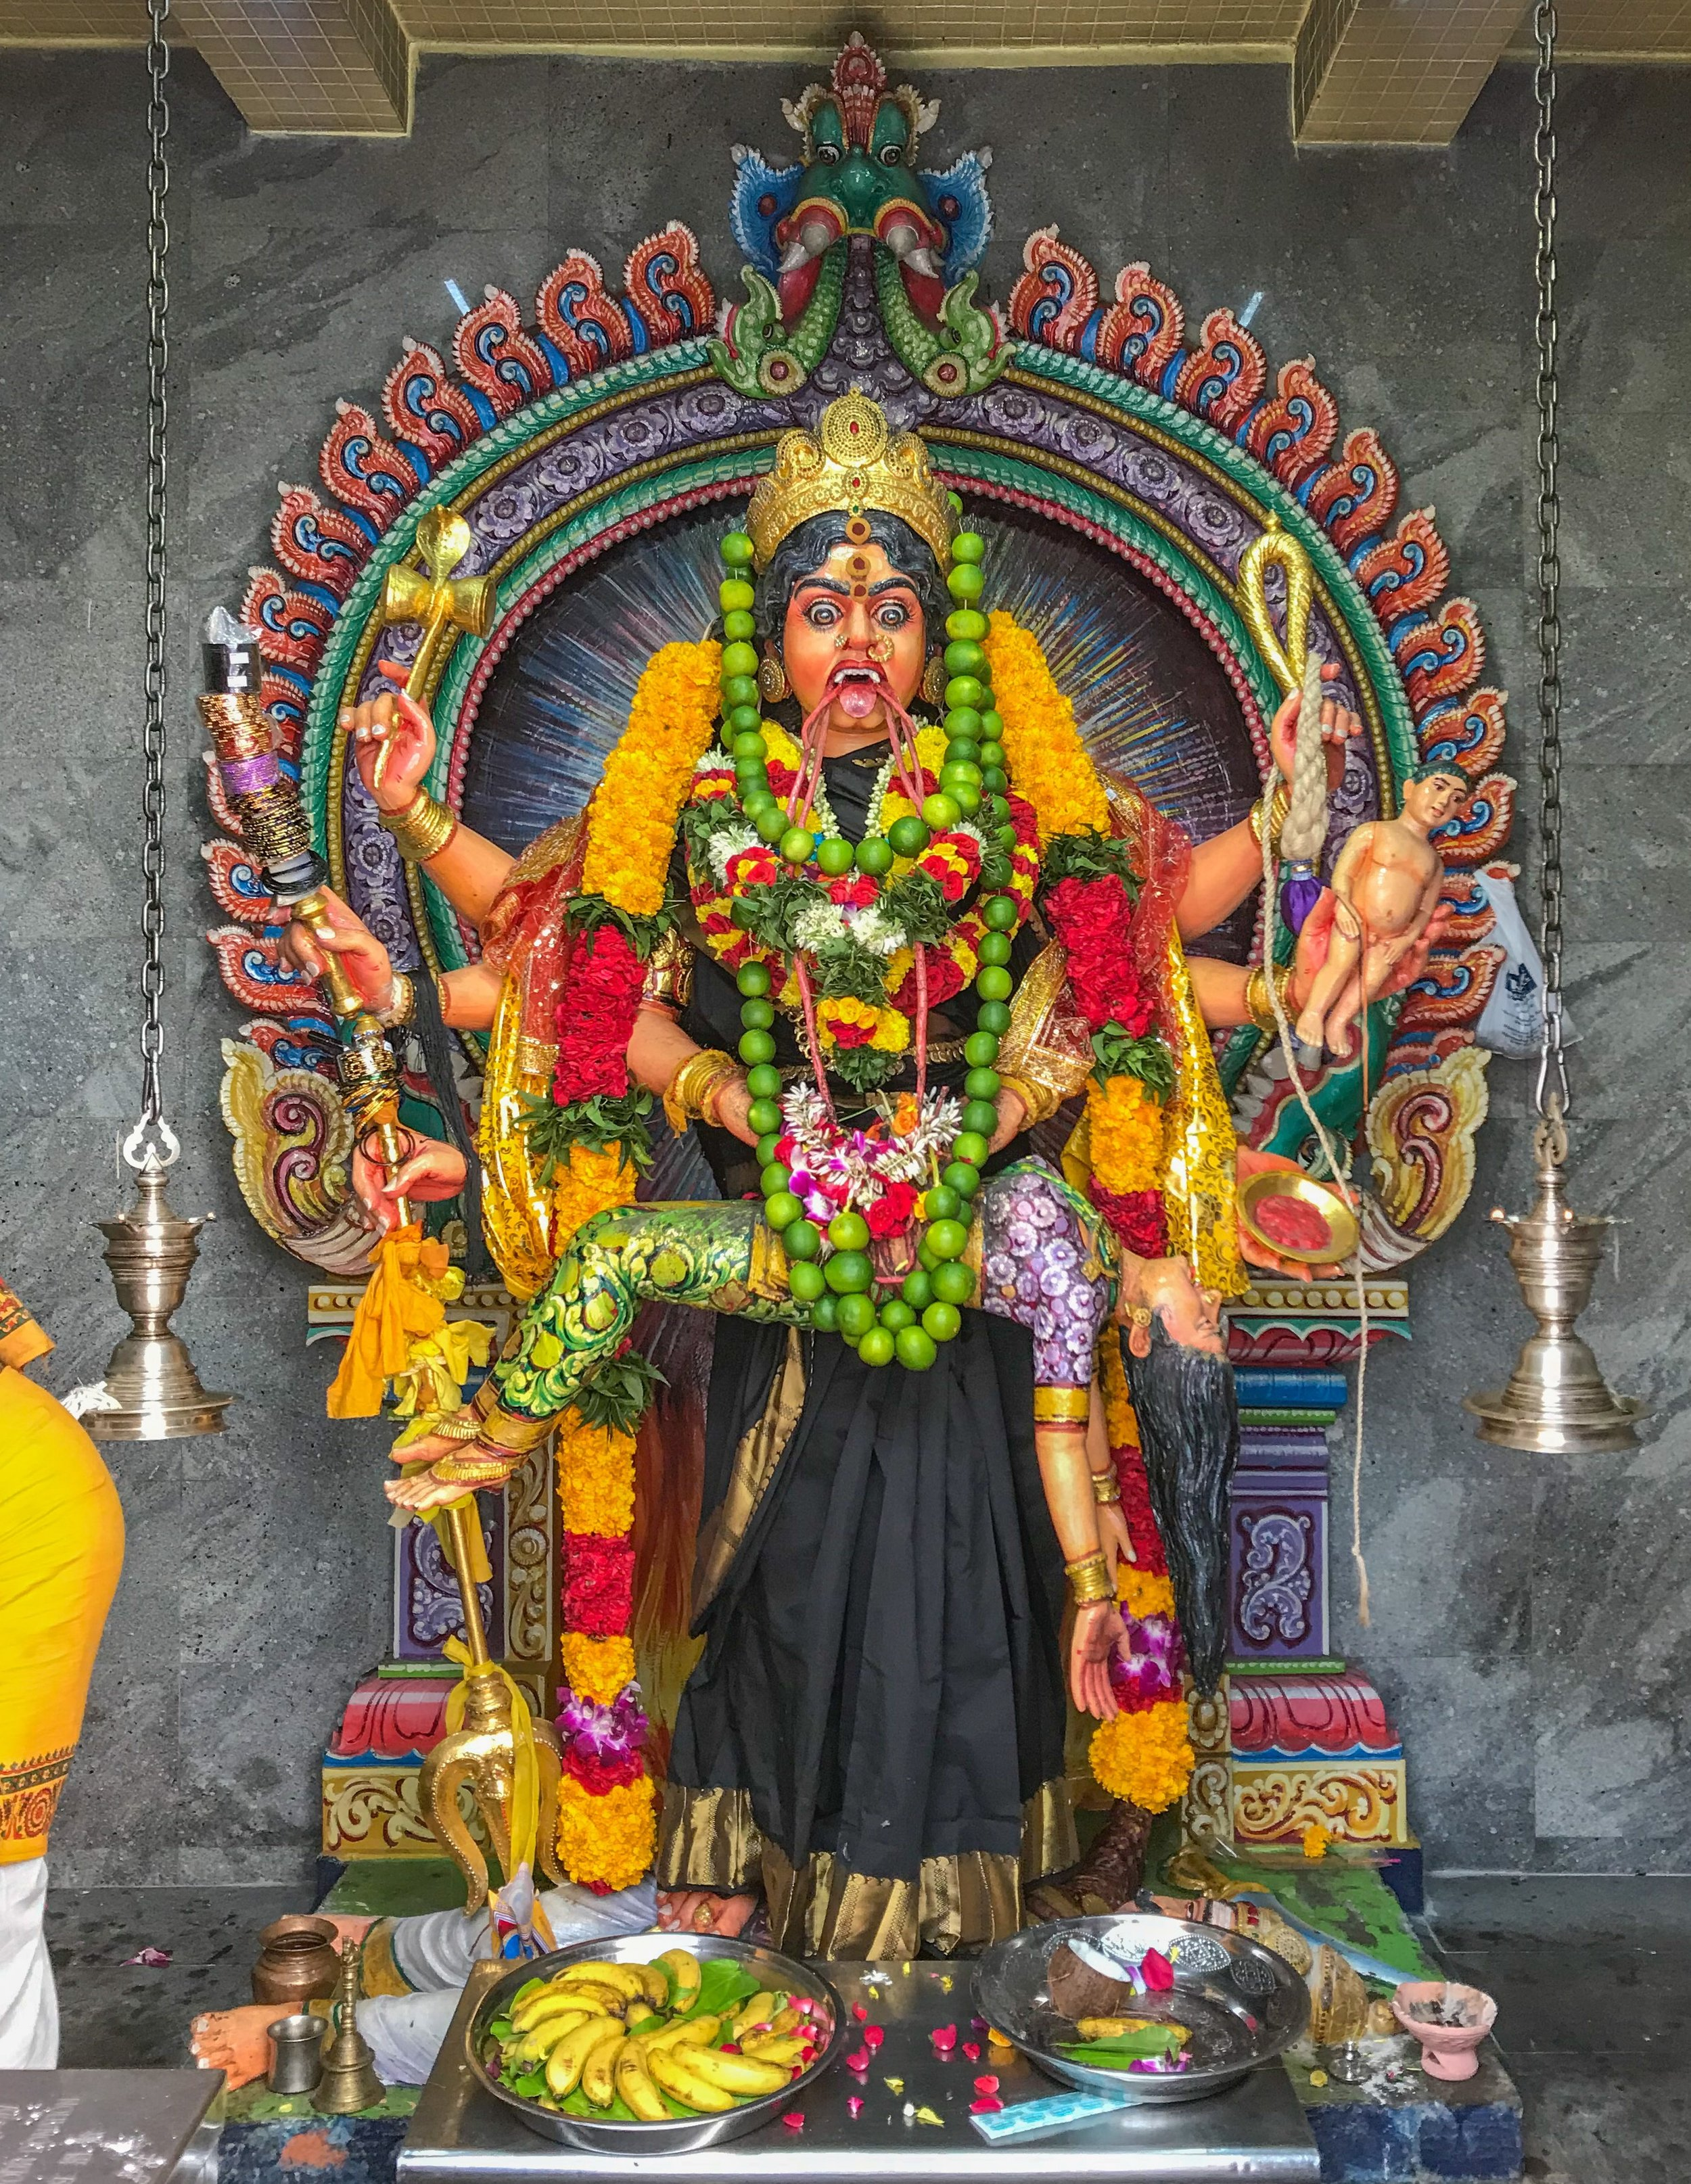 Periyachi, believed to conduct the first c-sections. Hindus pray to her for fertility.